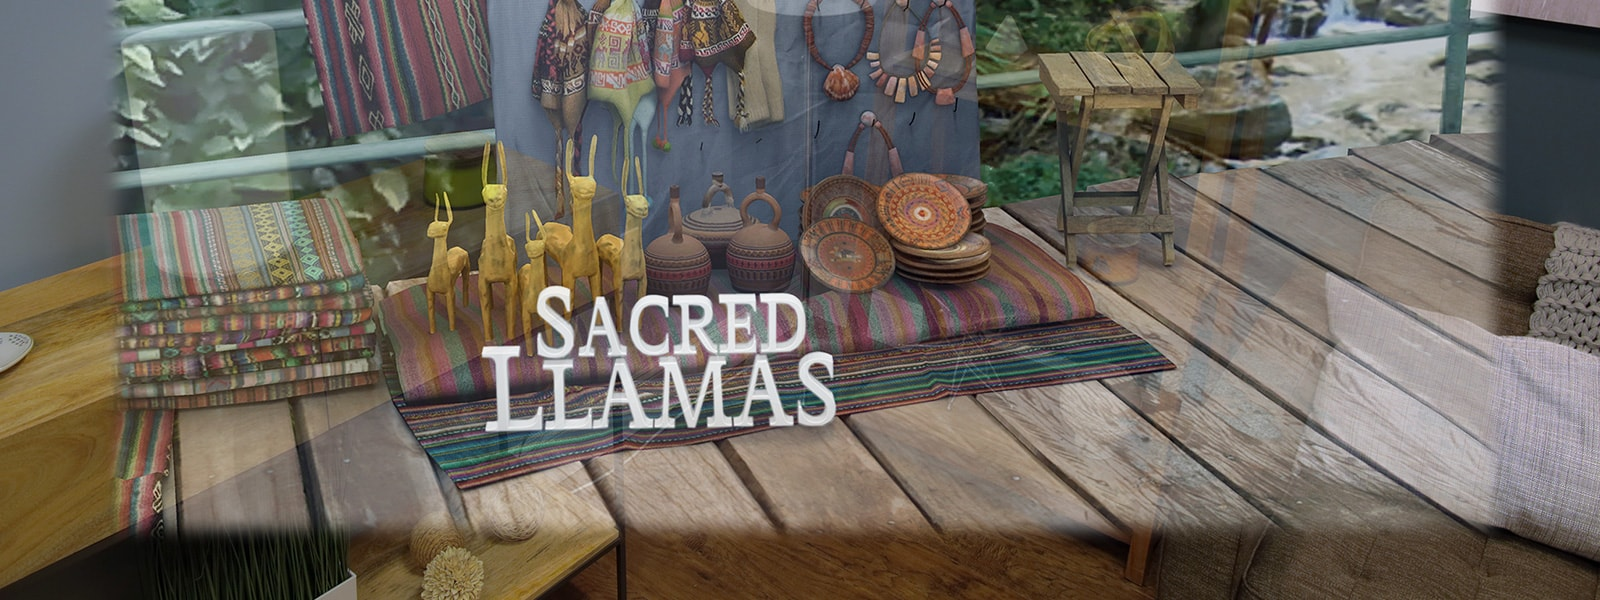 A holographic image of an supply store with Peruvian artefacts on display and the words Sacred Llamas overlayed